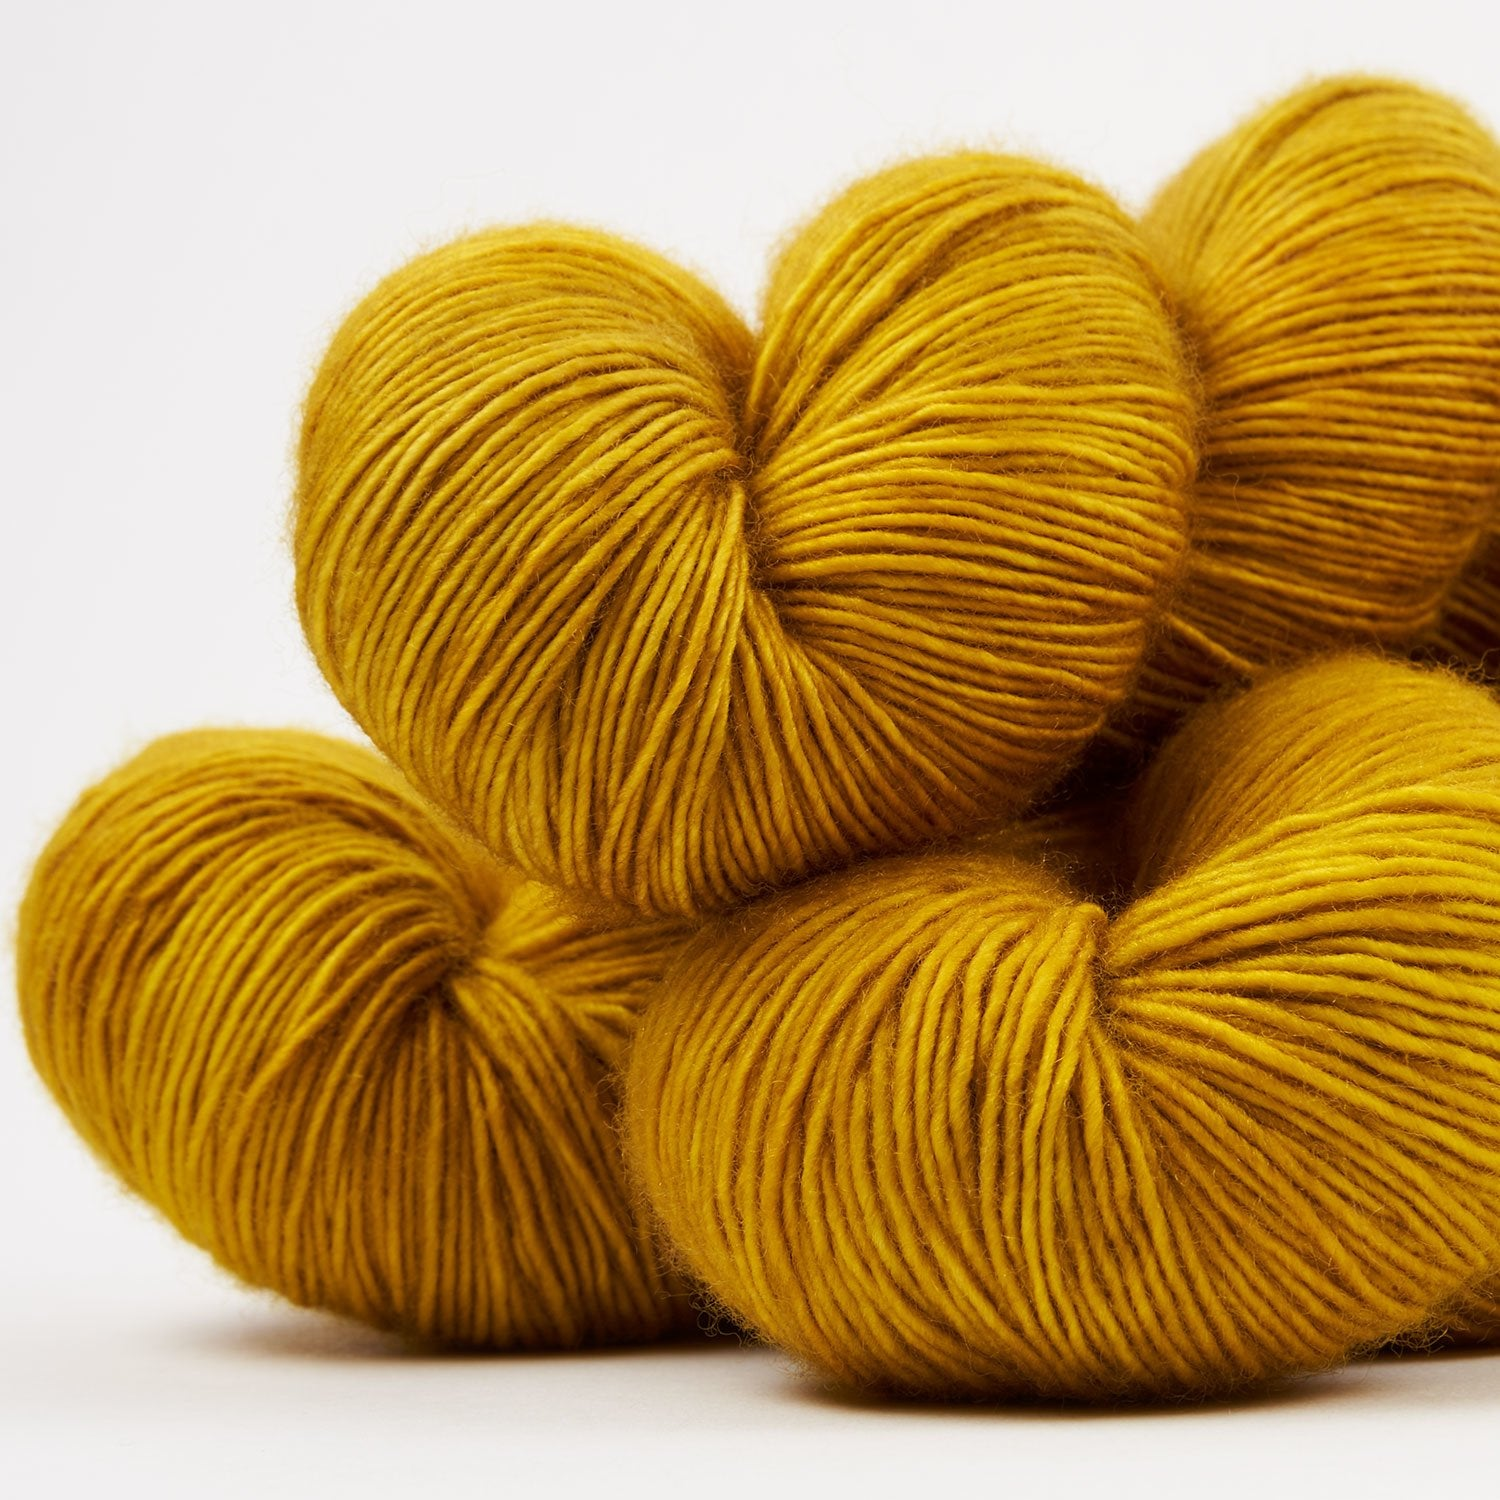 LBA MERINO SINGLES - YELLOW BRICK ROAD